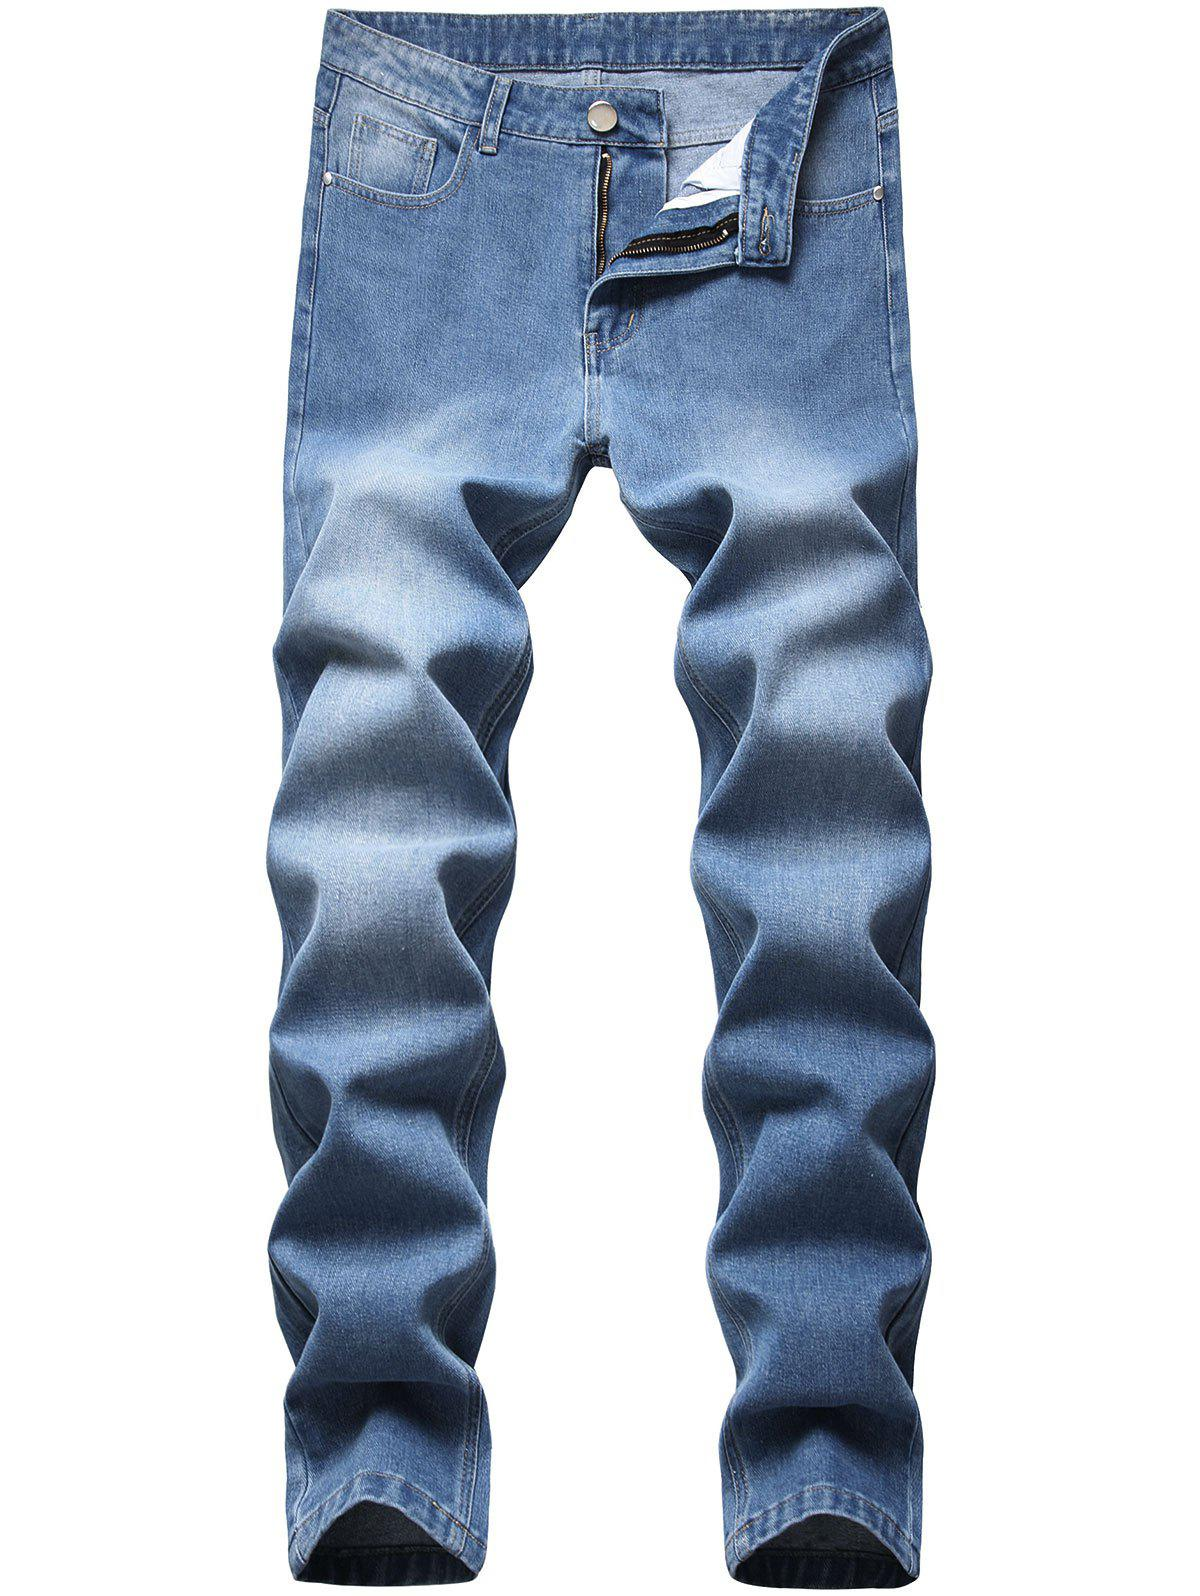 New Medium Wash Zipper Fly Tapered Jeans